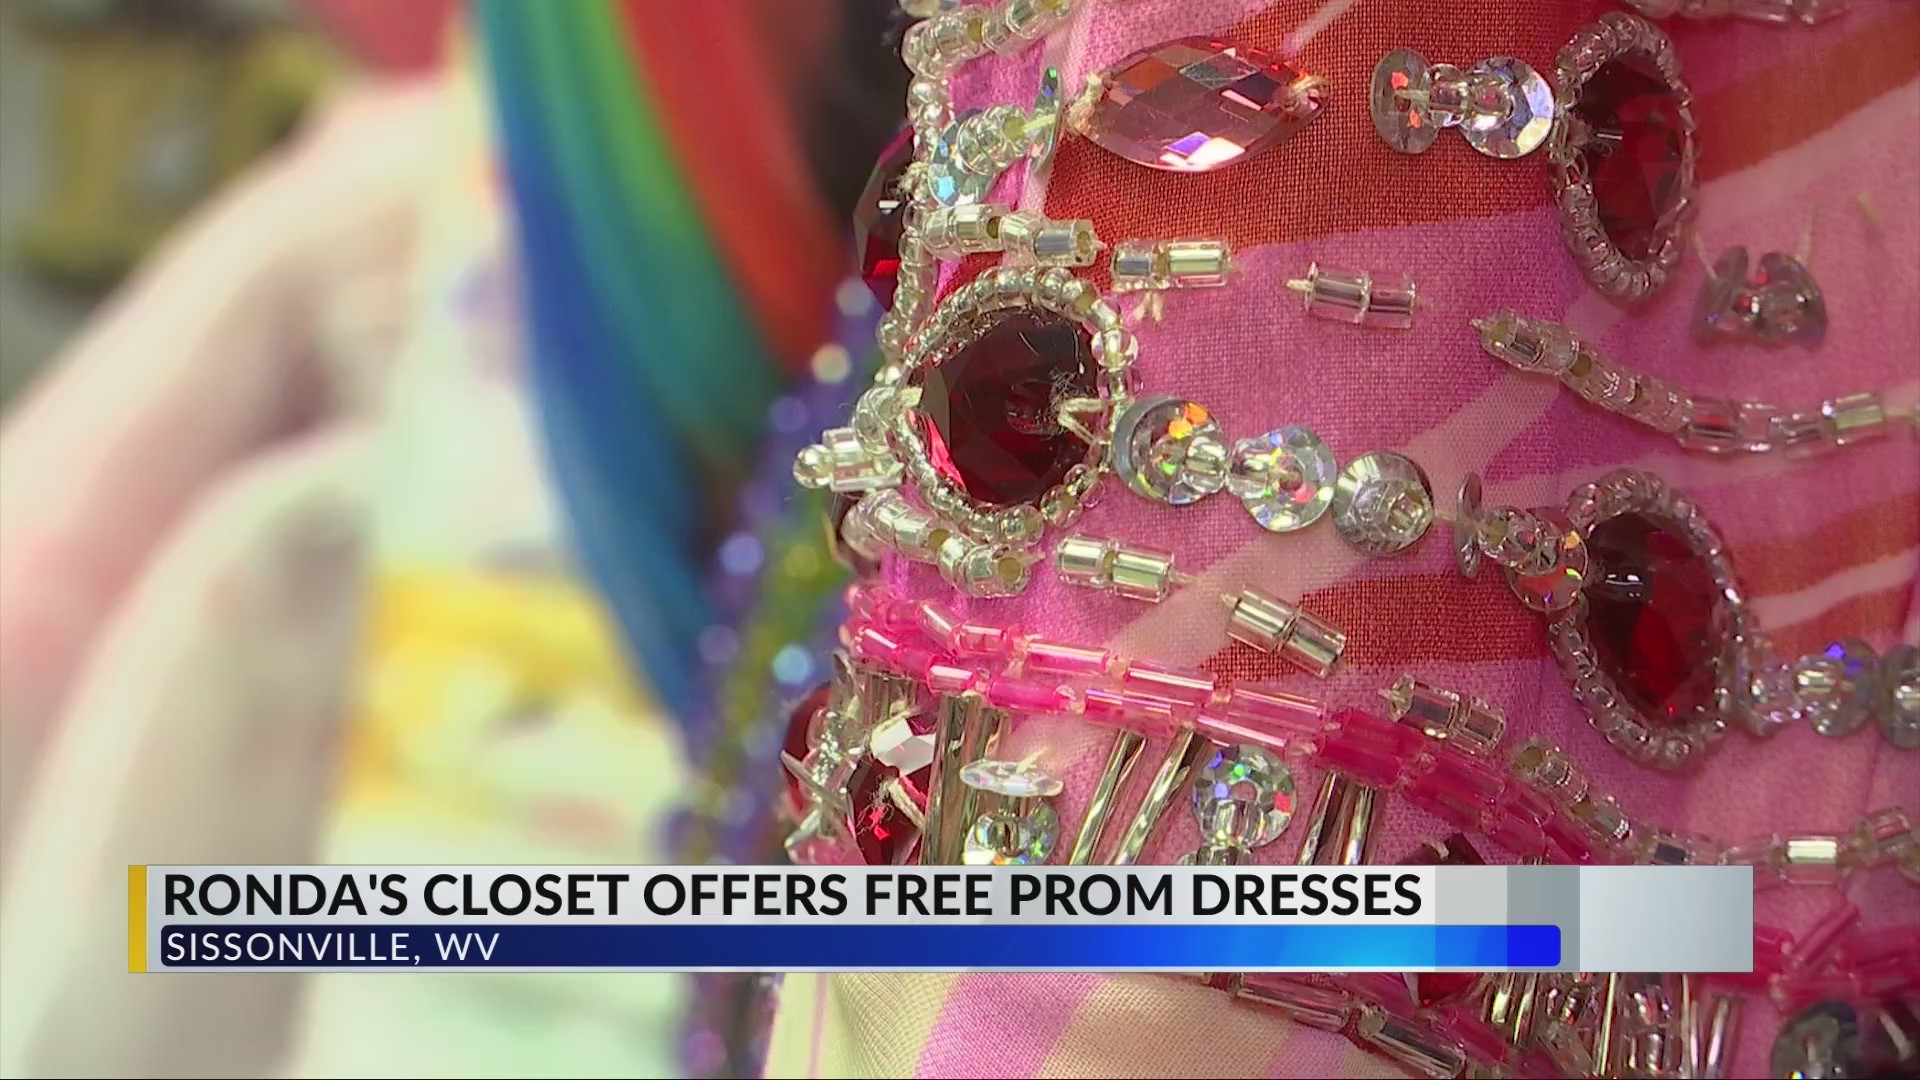 Ronda's Closet Offers Free Prom Dresses for Local Girls